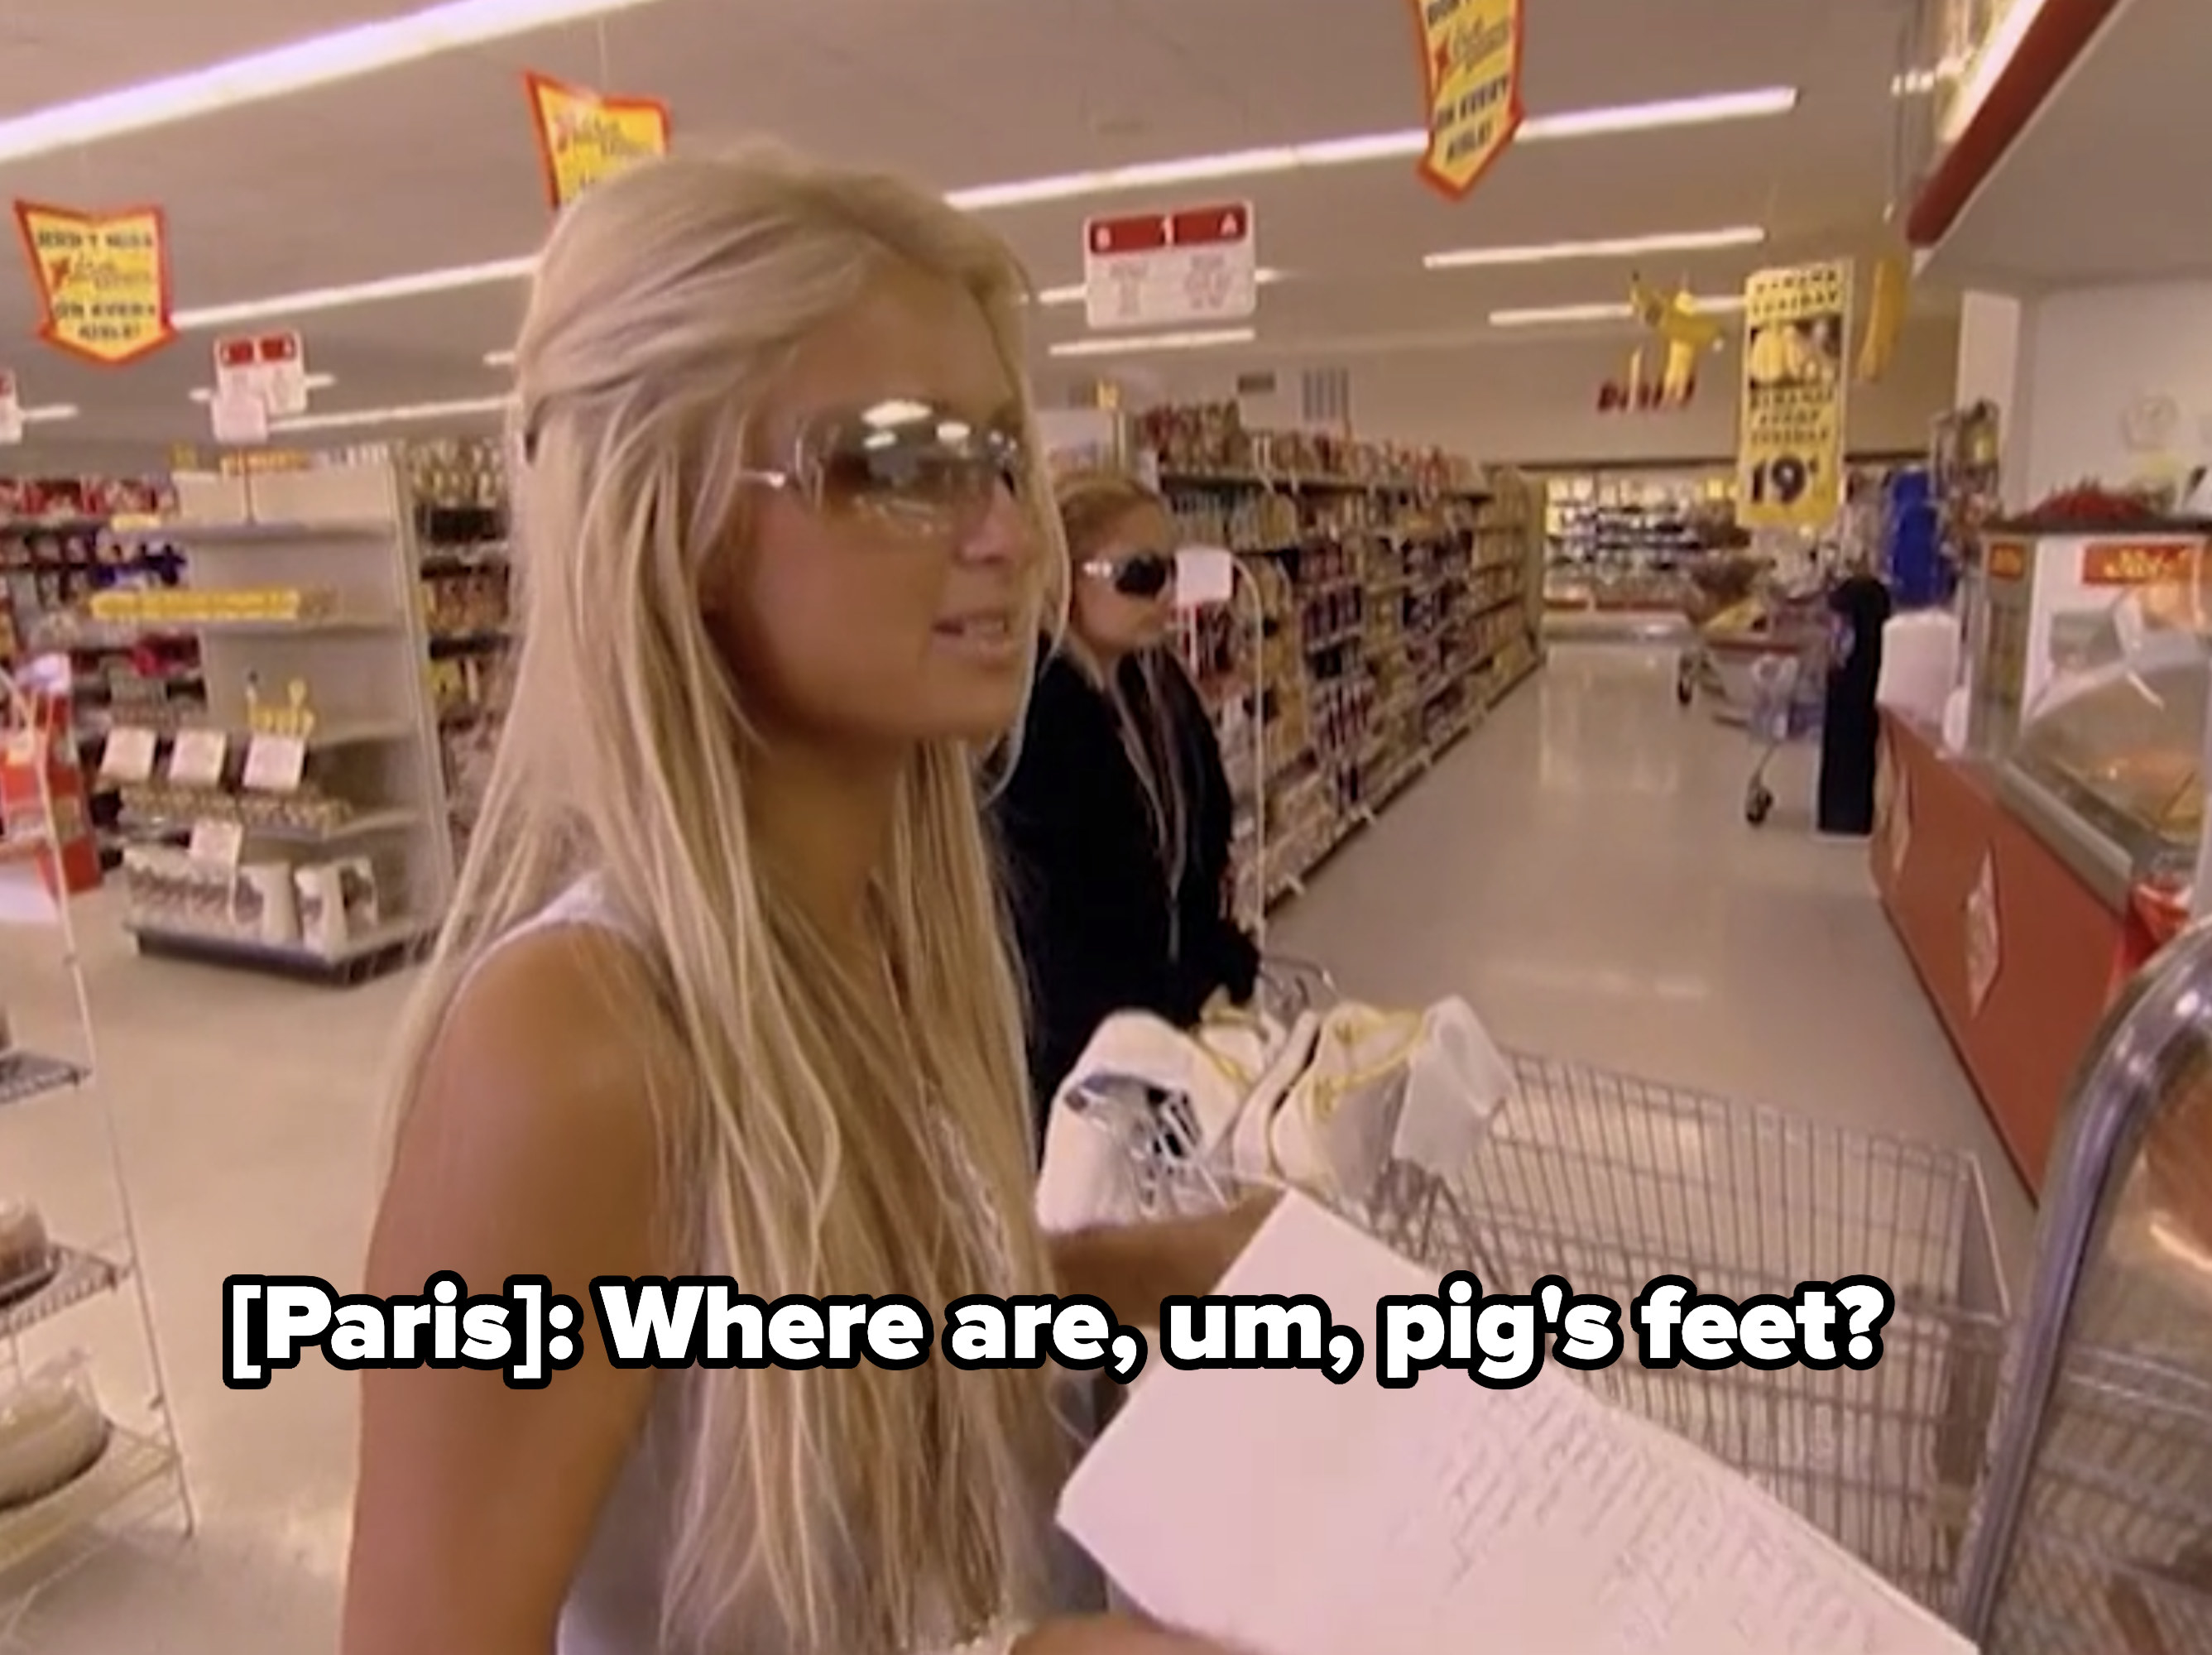 Paris inquiring about the location of pig's feet at the grocery store.